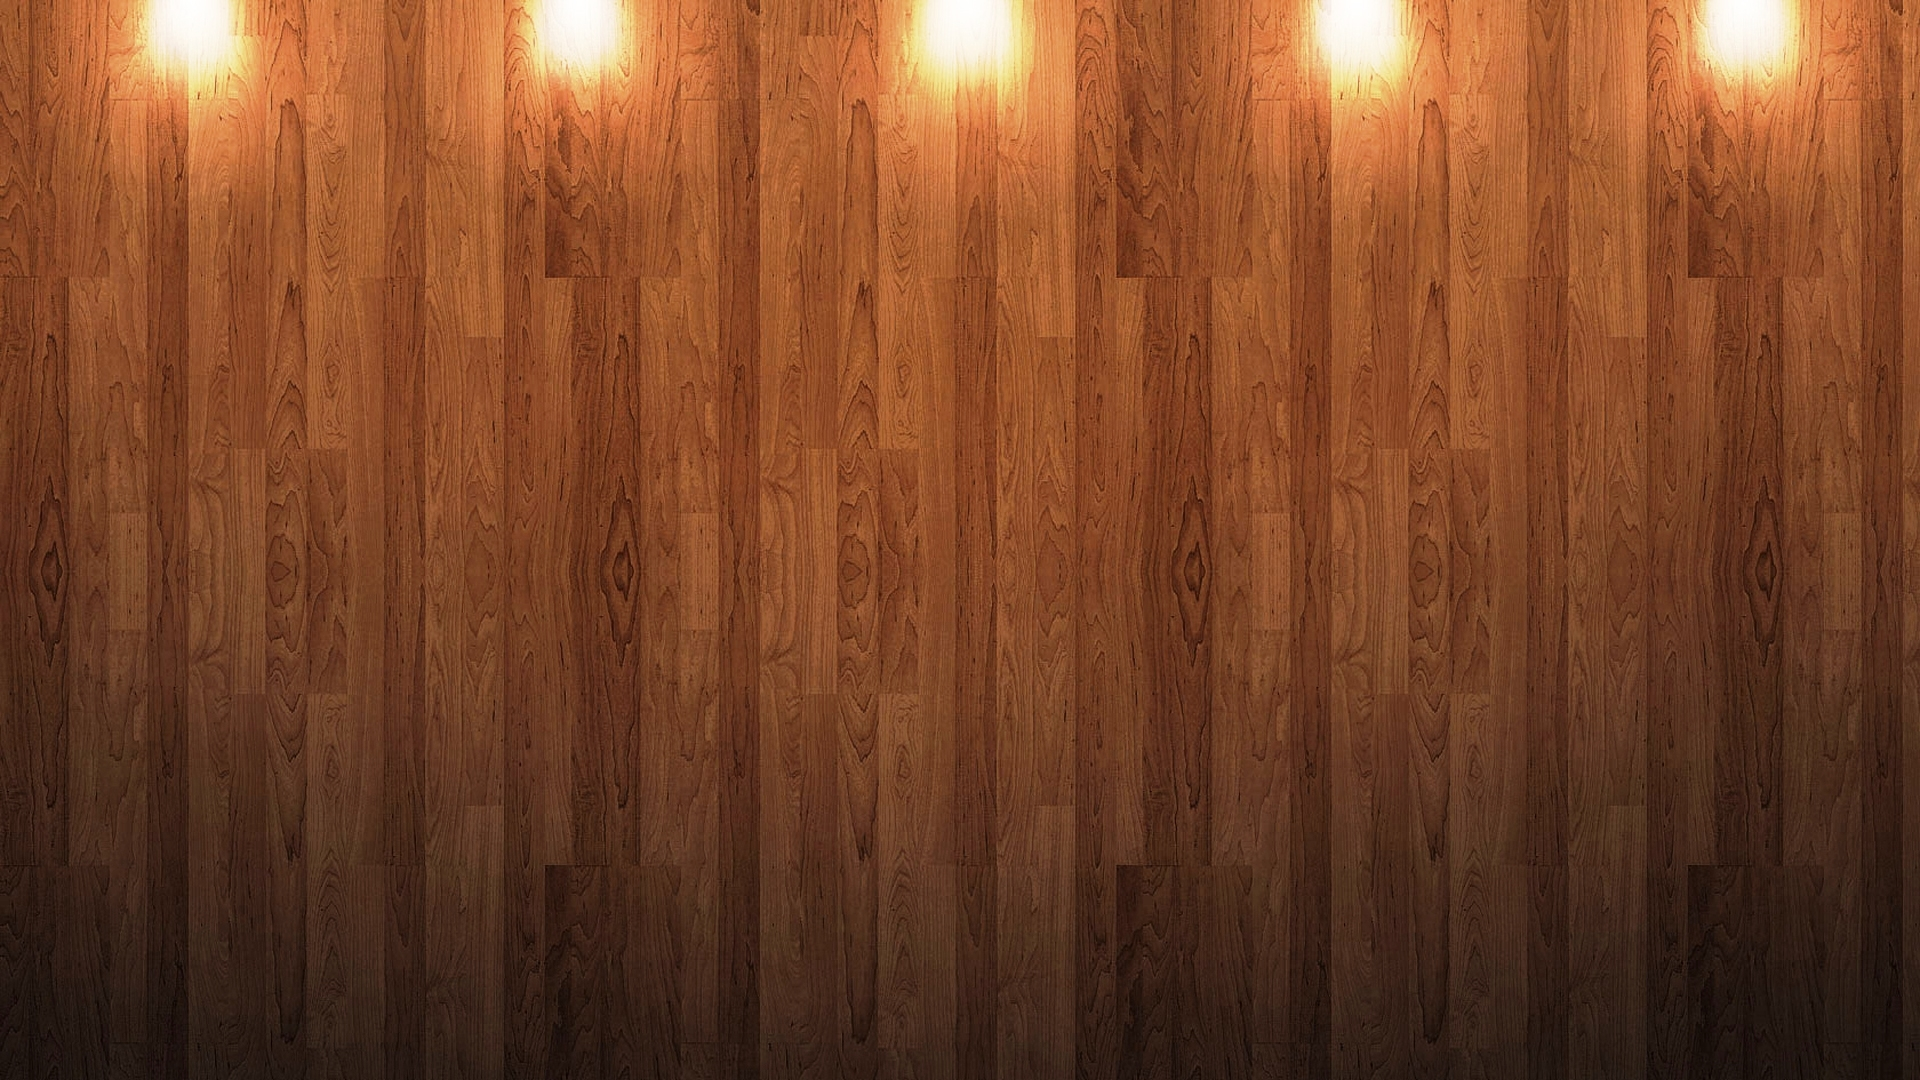 35 hd wood wallpapersbackgrounds for free download wood wallpaper background 9 thecheapjerseys Images